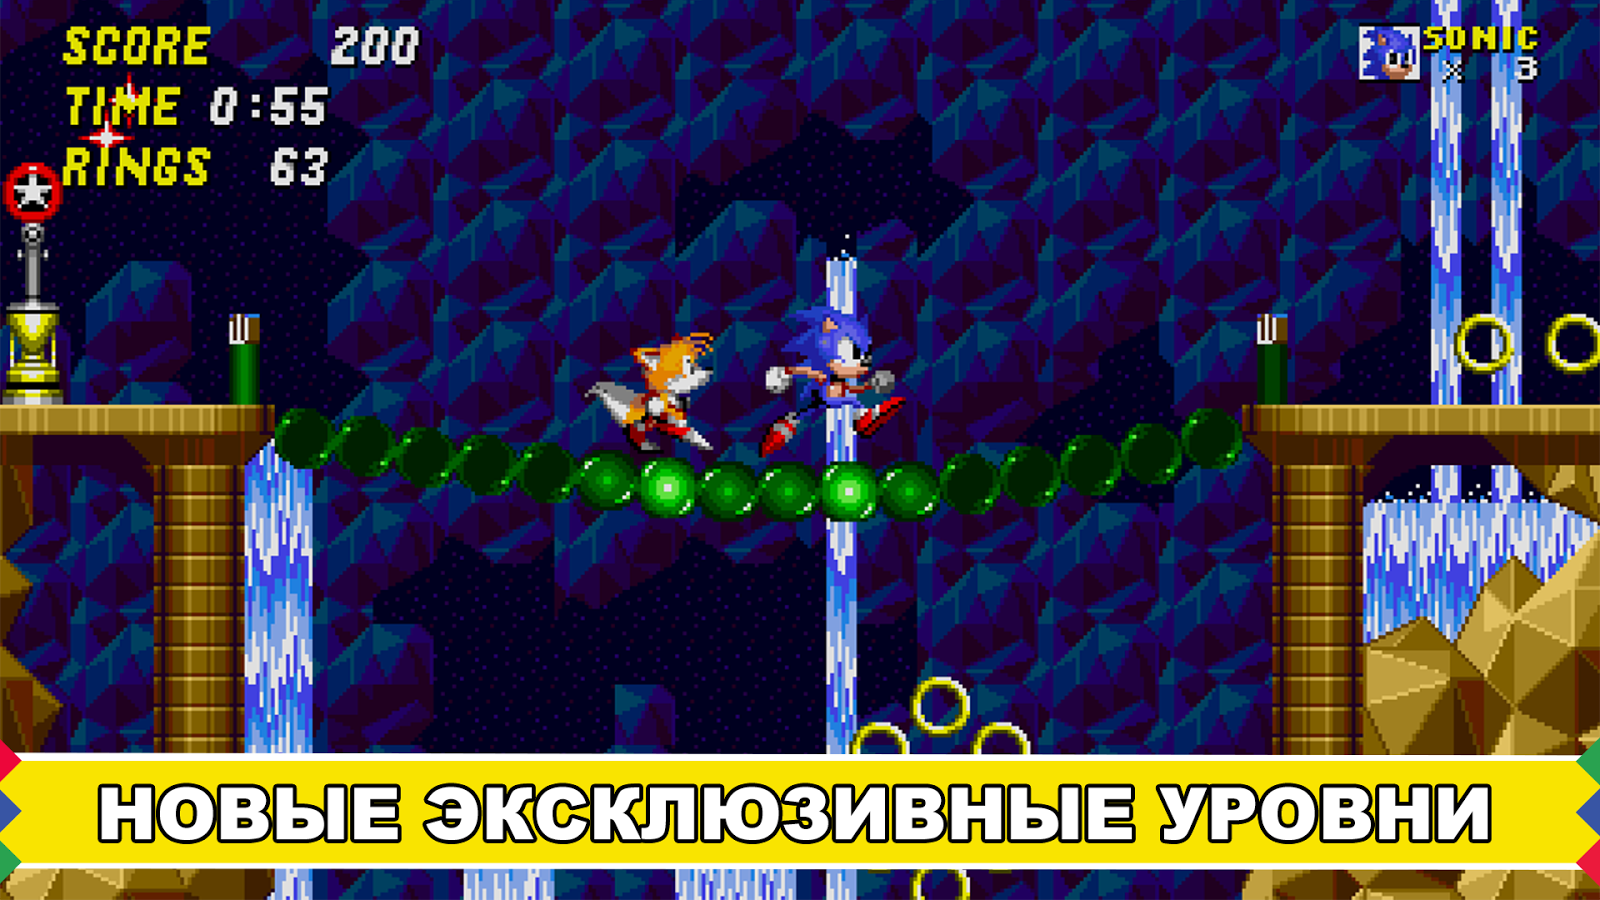 Download sonic the hedgehog 2 (unlocked) 3. 1. 5mod apk for android.